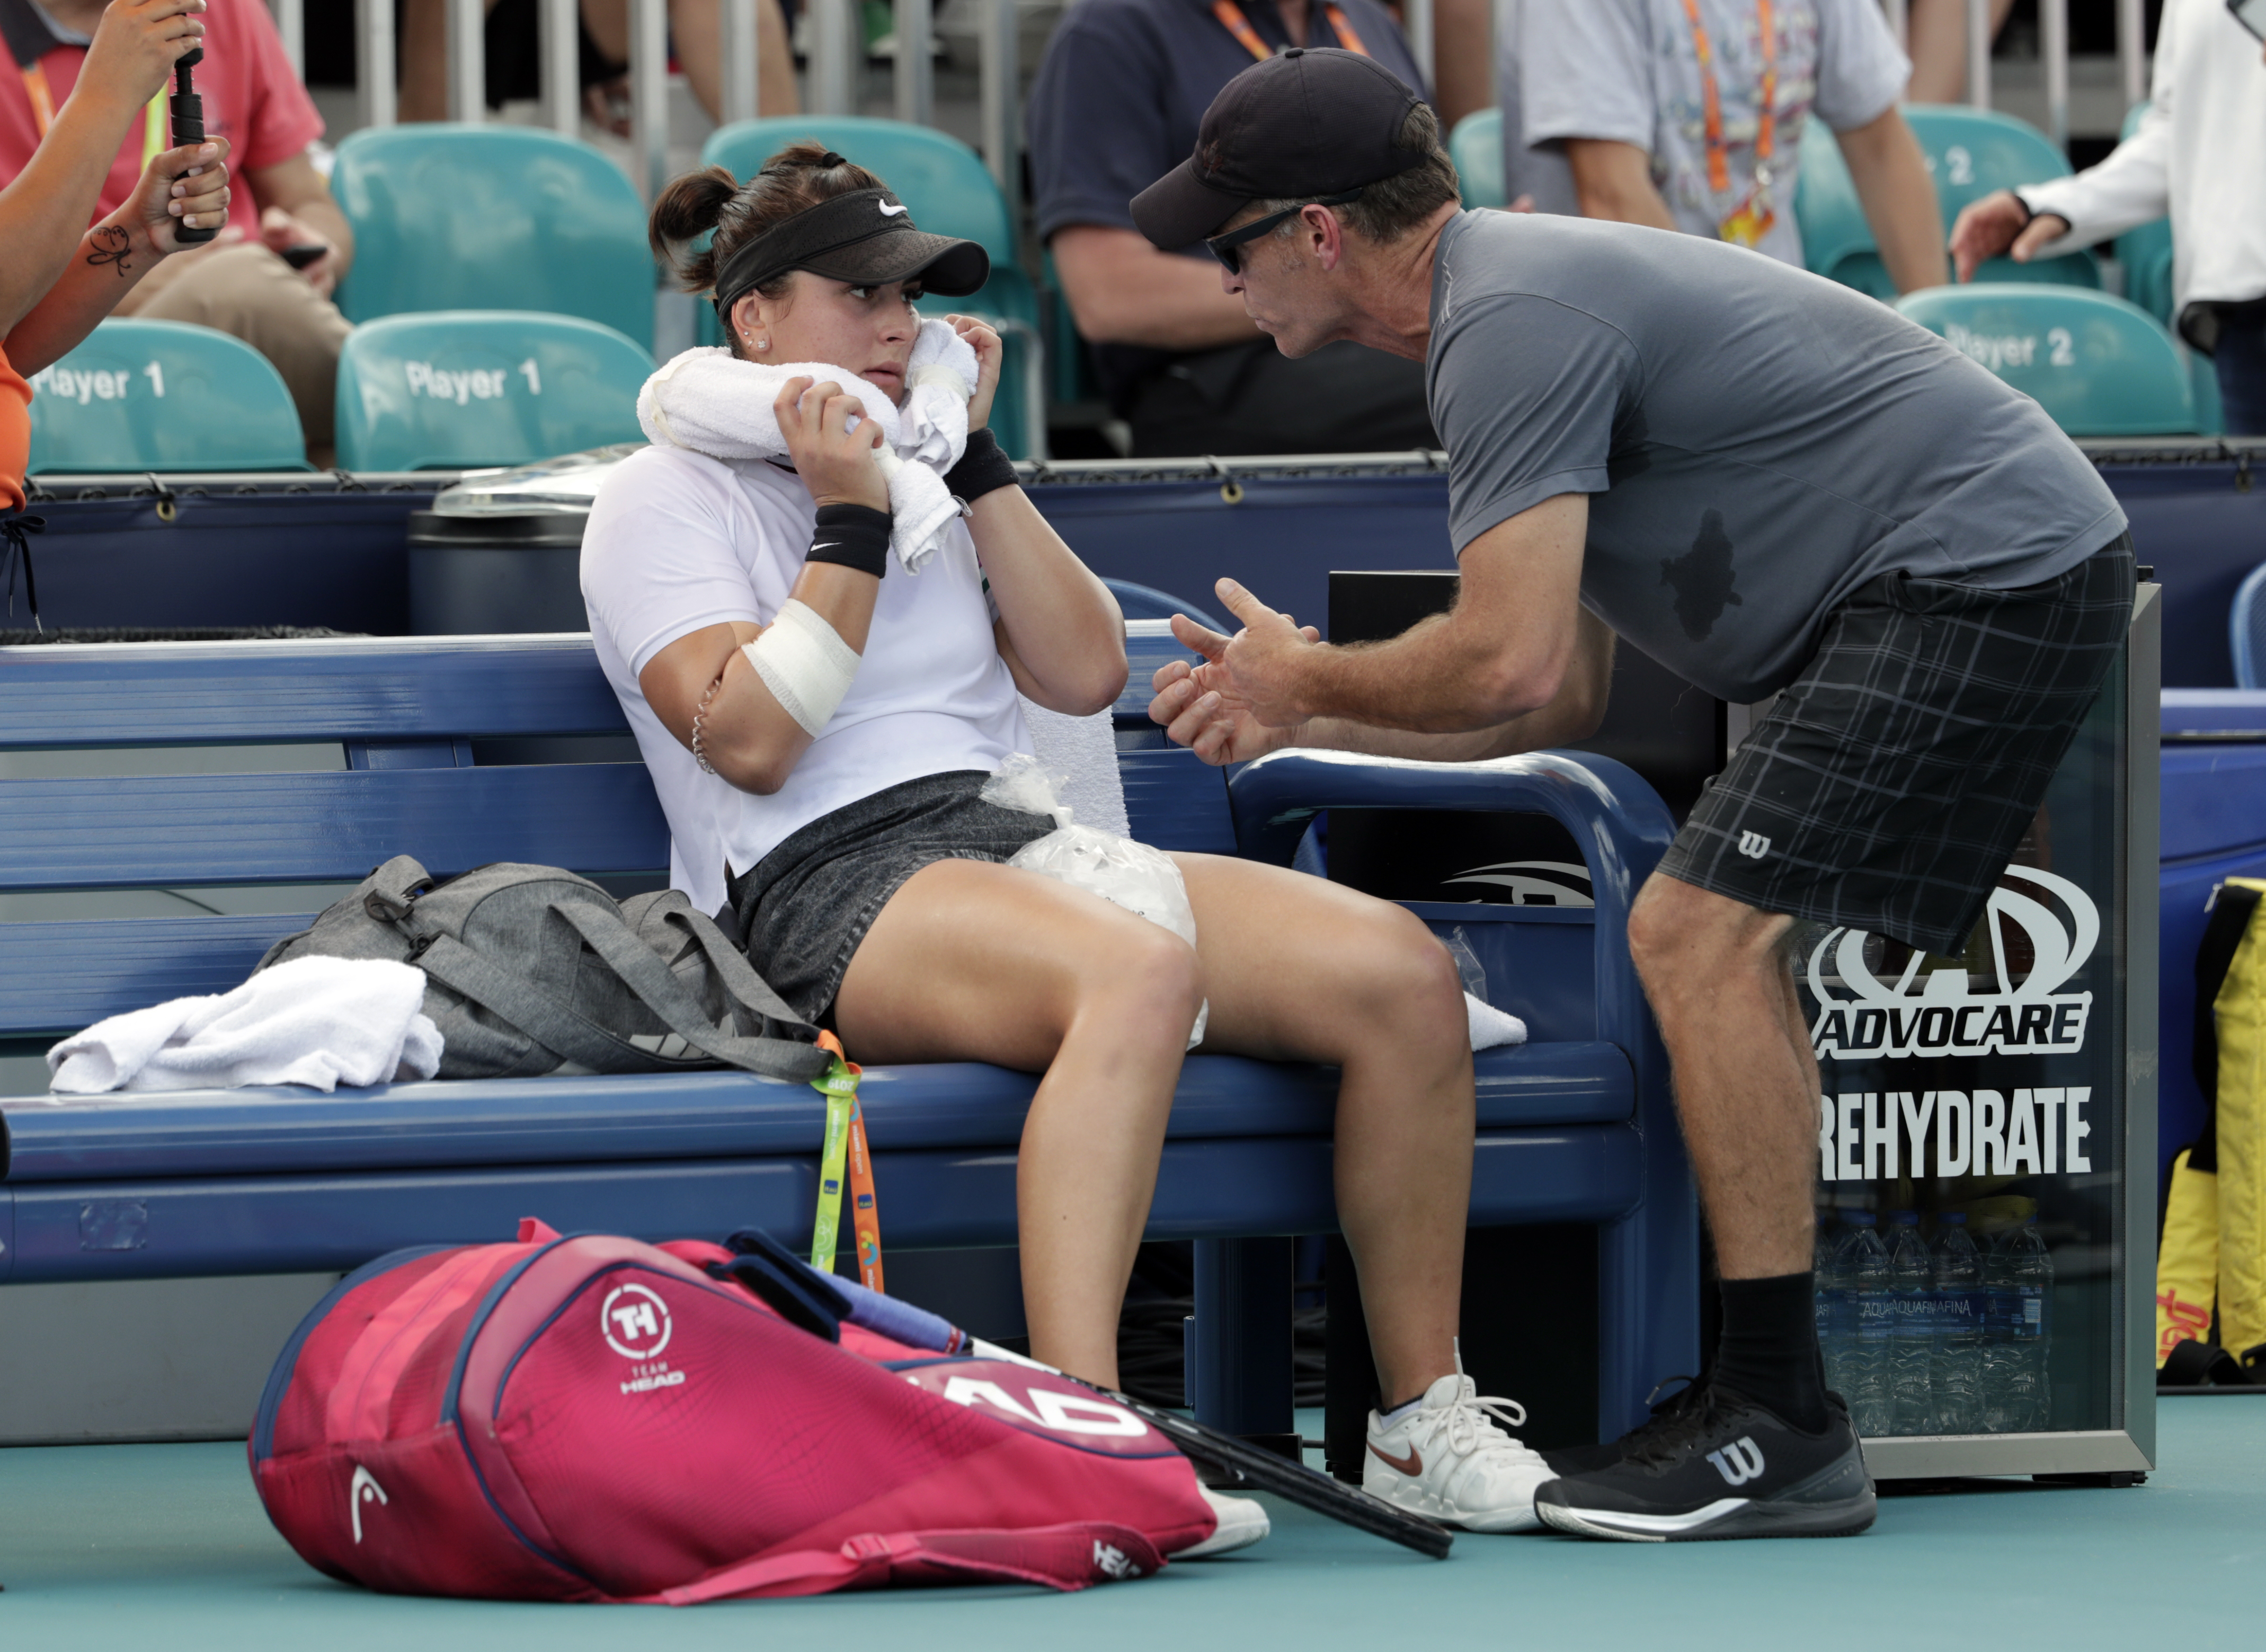 'Rules are rules': Tennis coach admits infection as officials defend quarantine